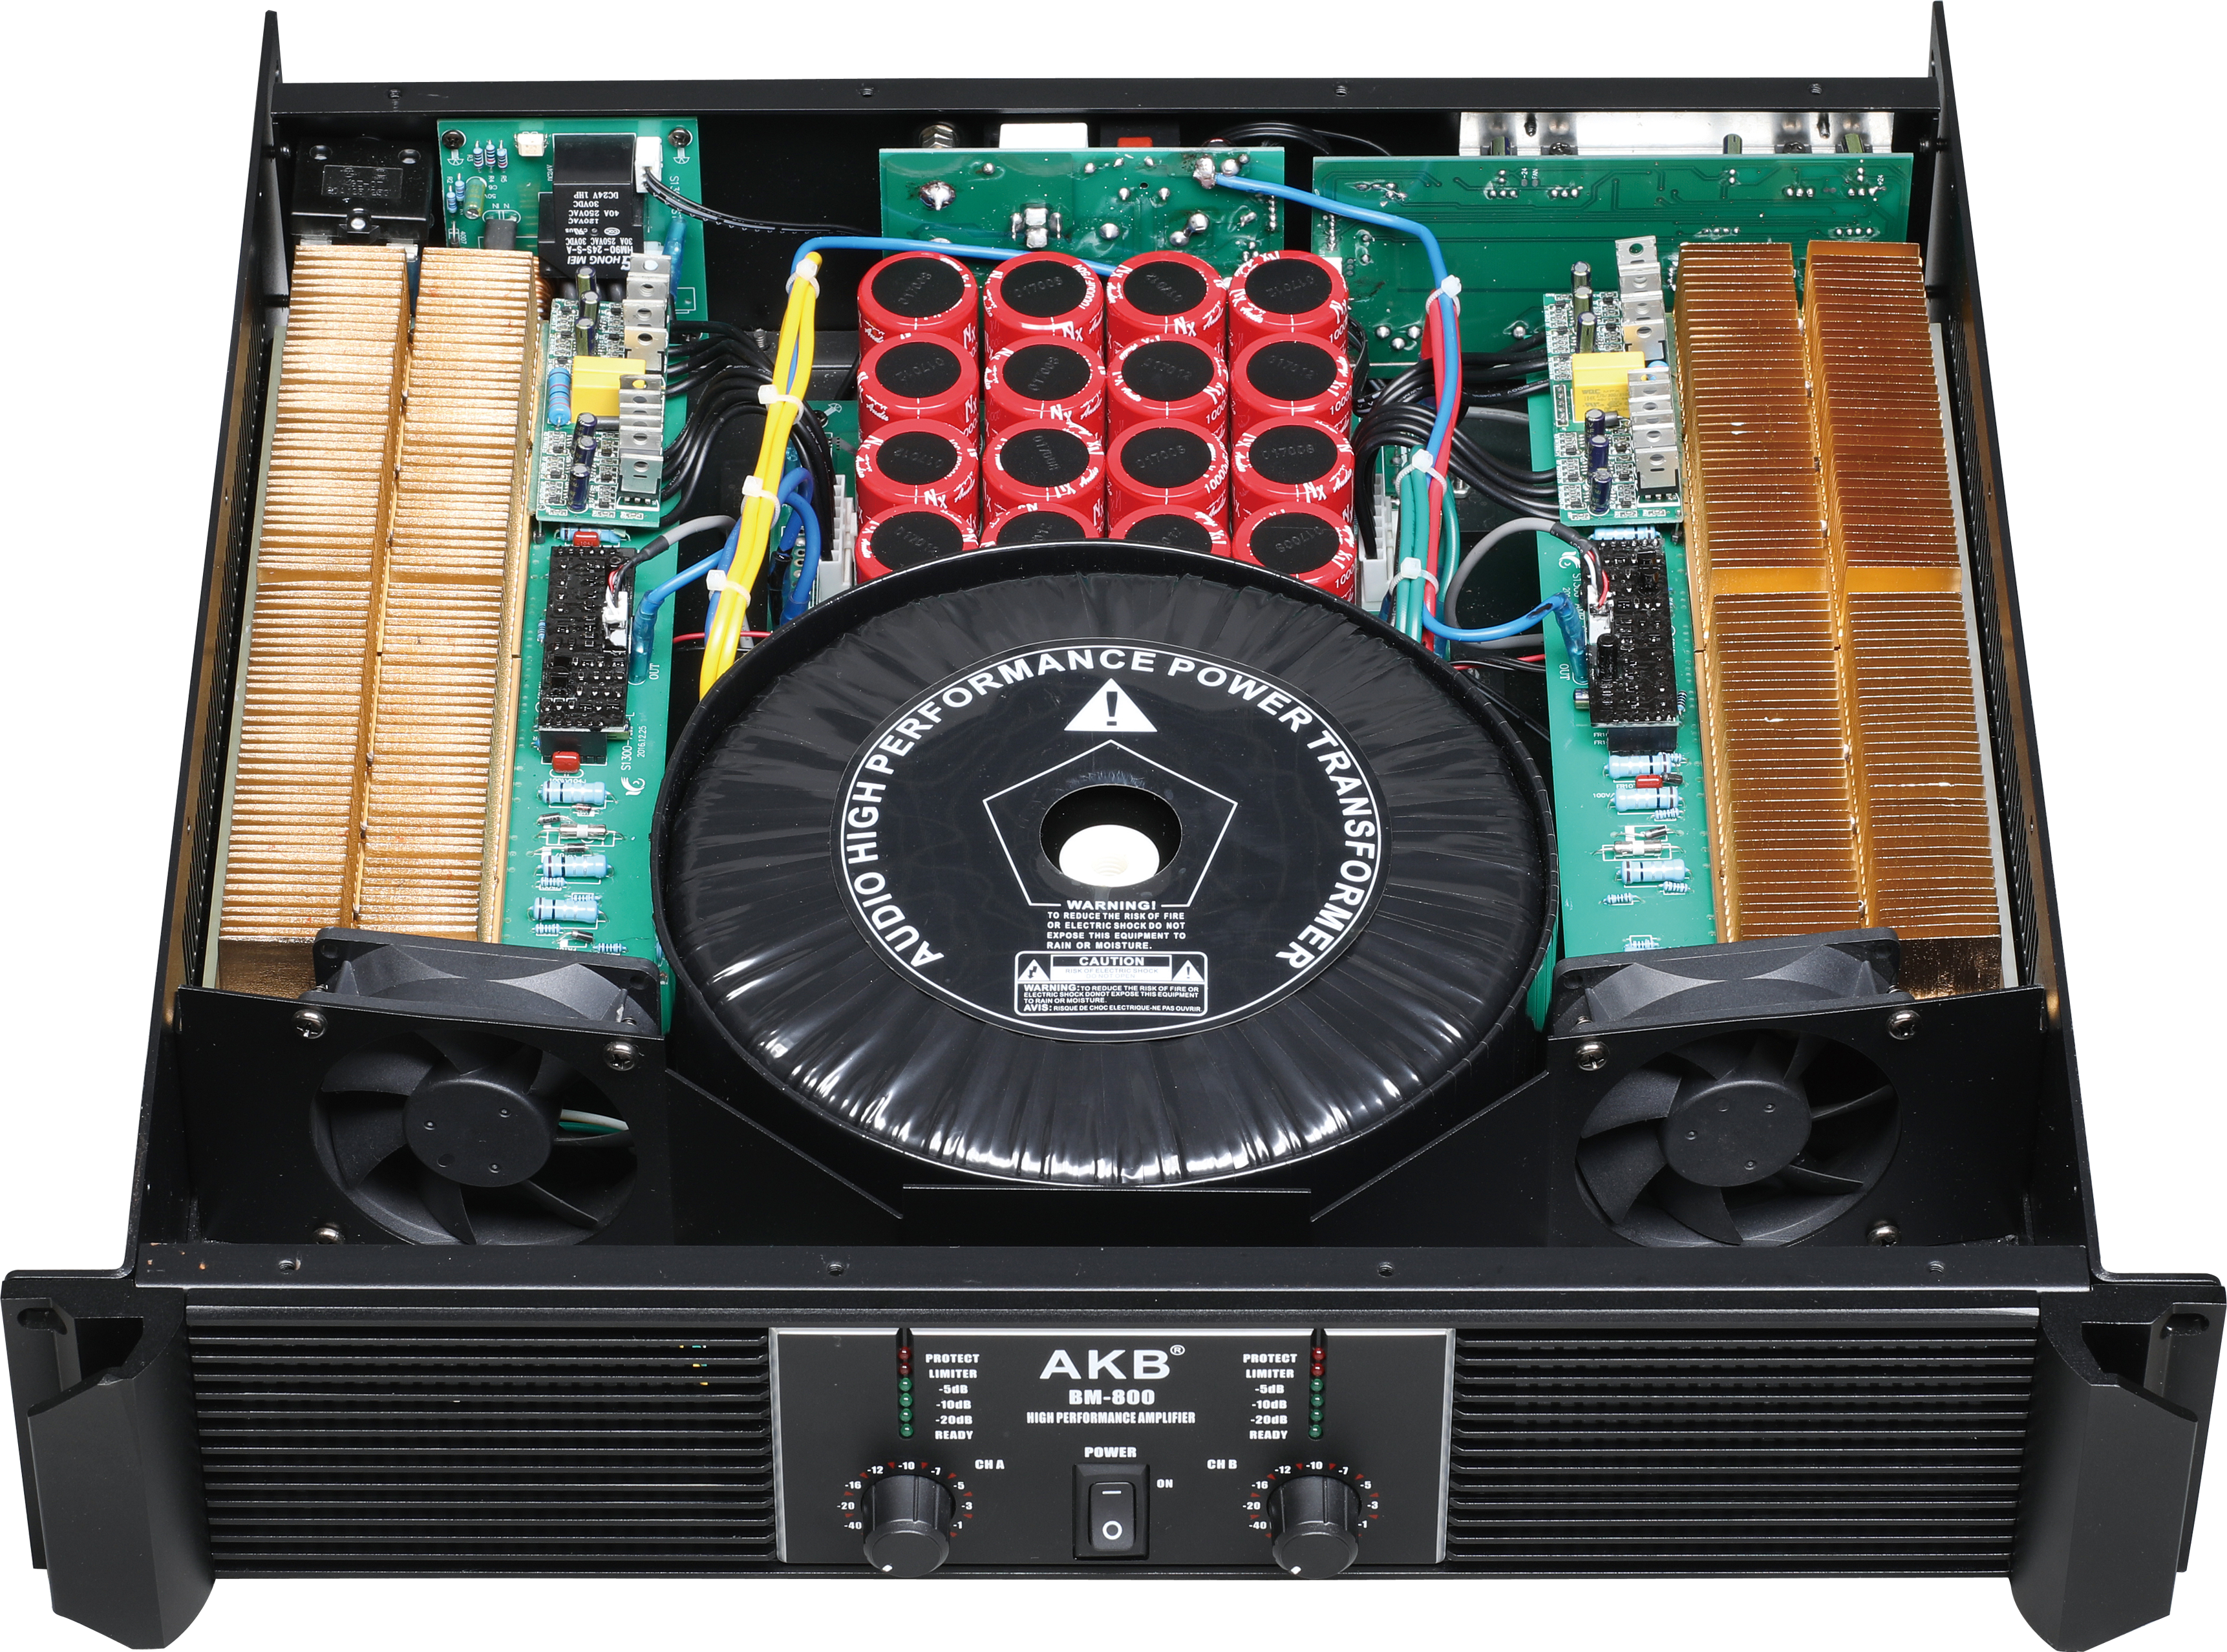 BM series Amplifier manufacturer Stereo power Amplifier